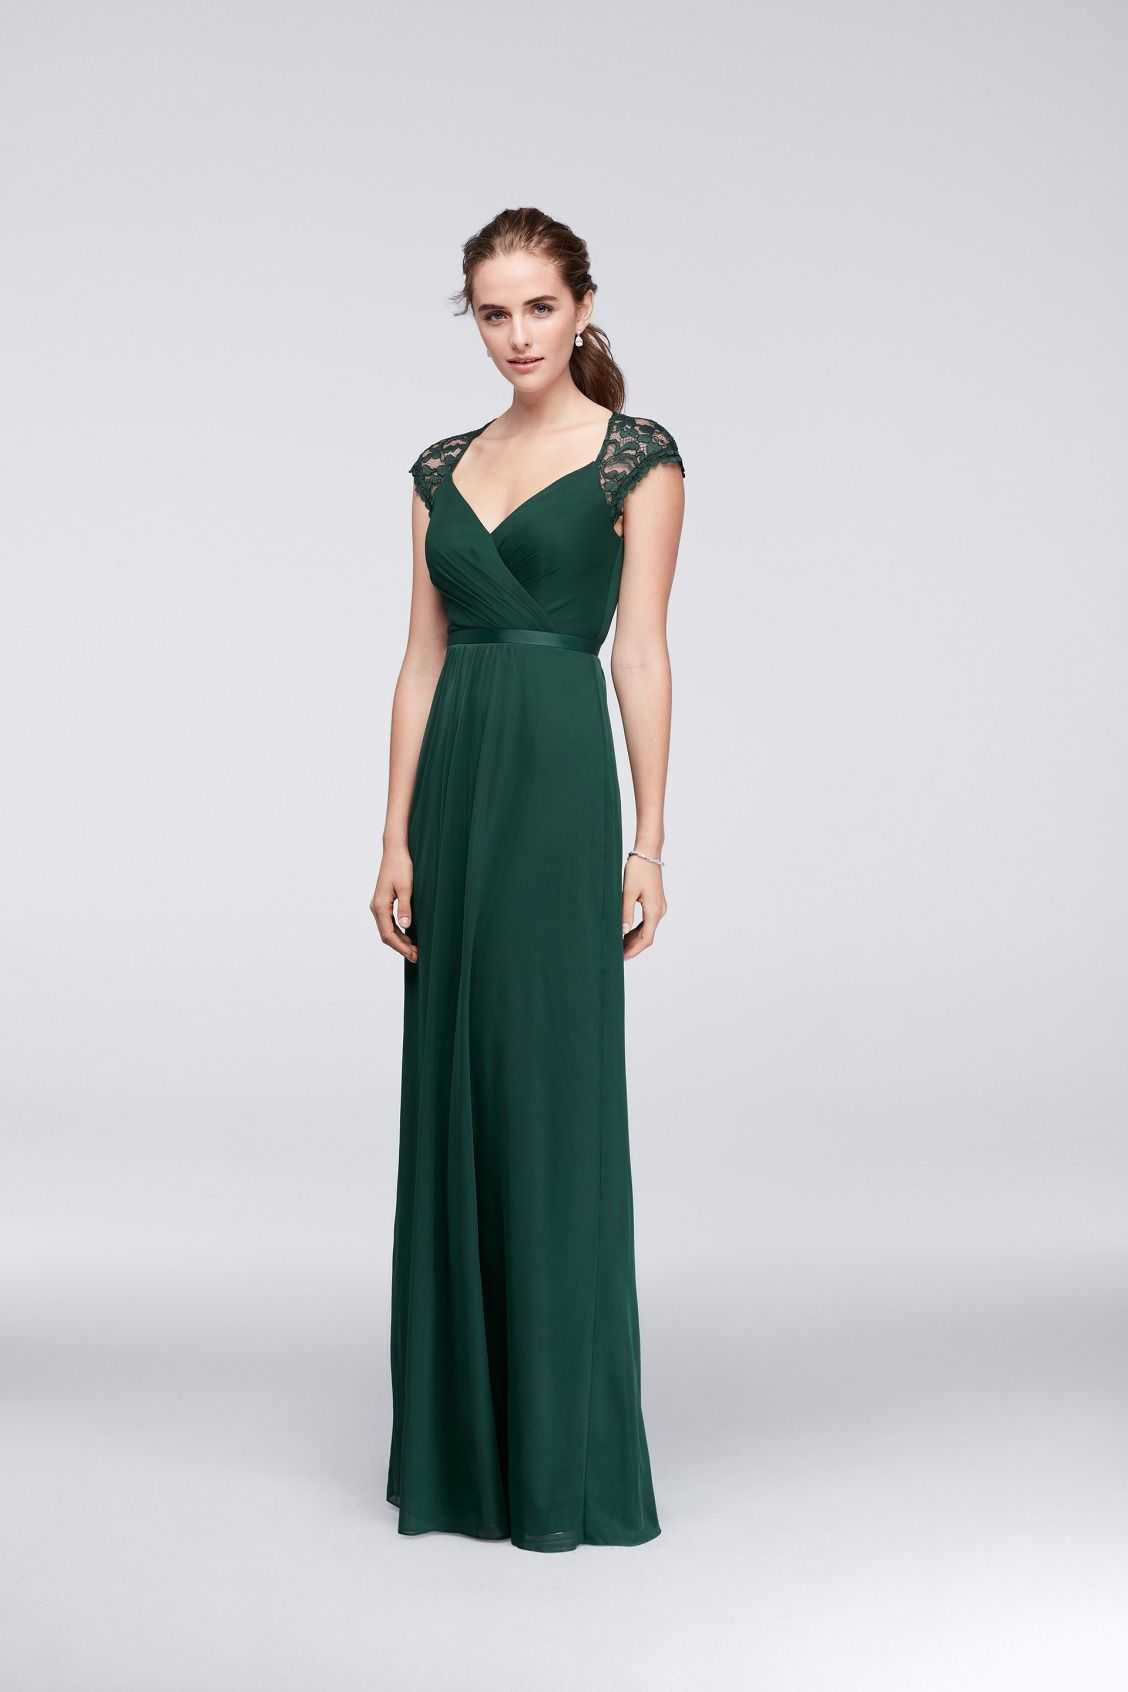 78620b9c4dbd Juniper Green Long Mesh Bridesmaid Dress with Lace Cap Sleeves and Open  Back by David's Bridal